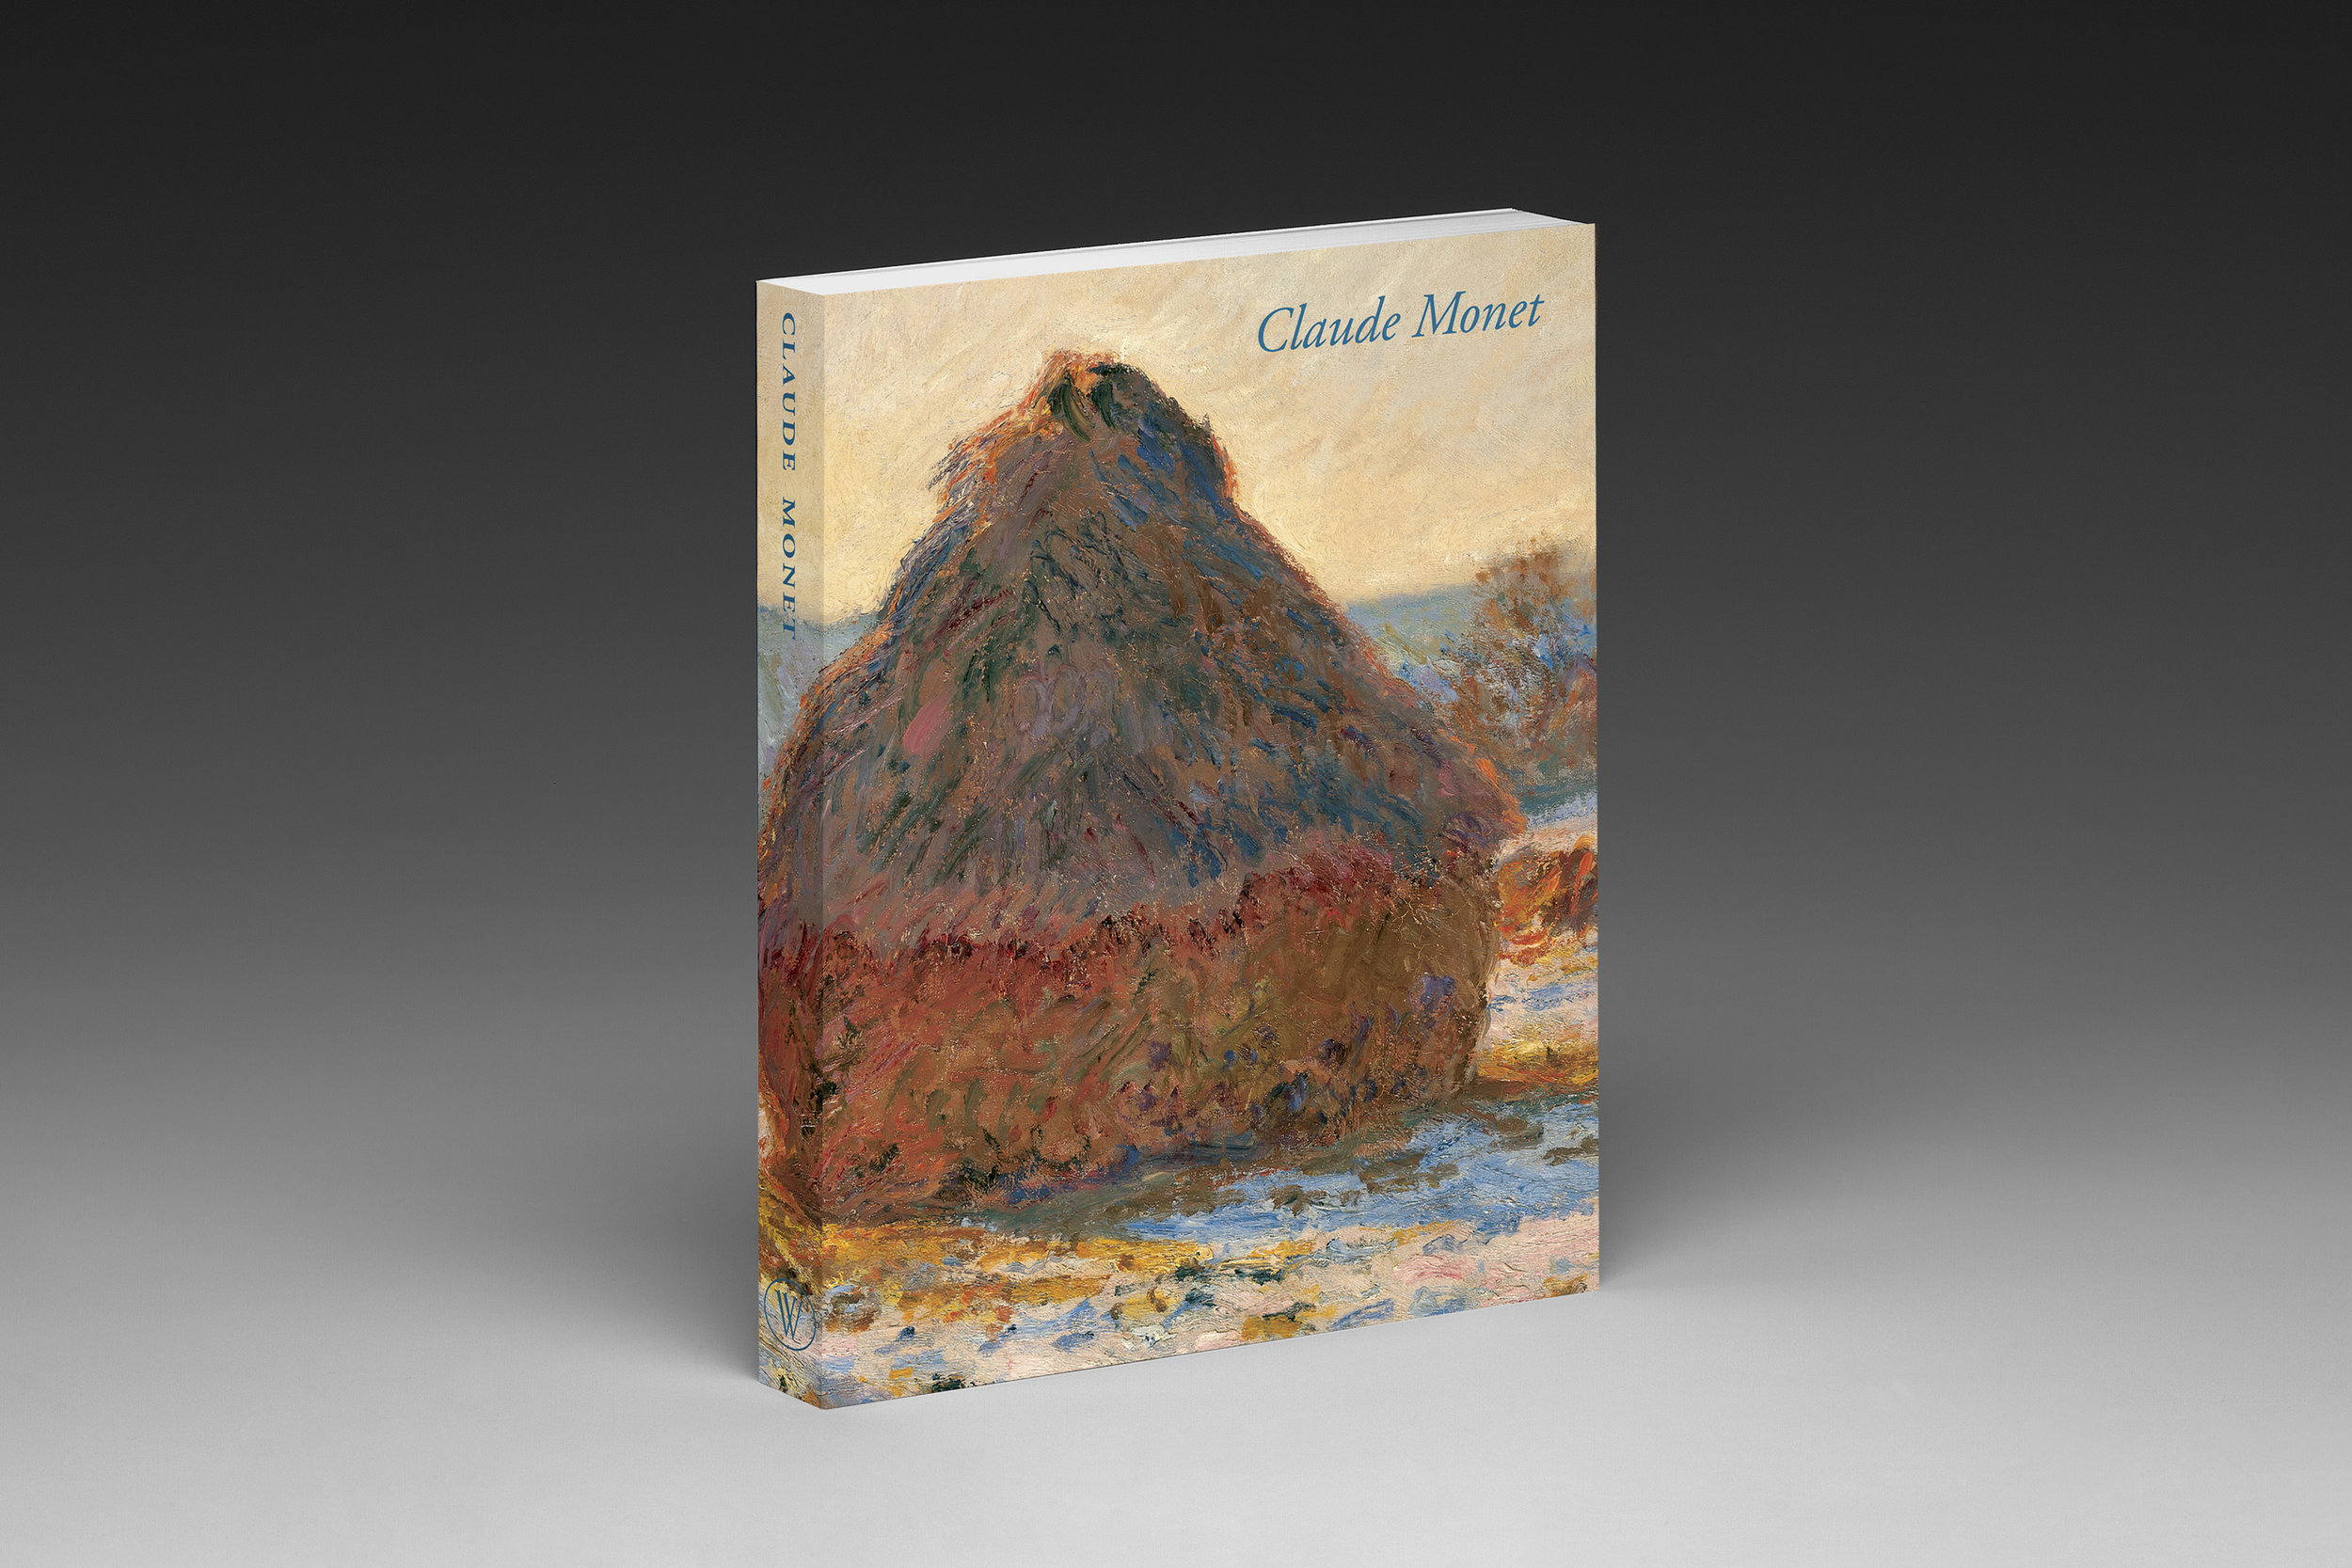 Claude Monet exhibition catalogue